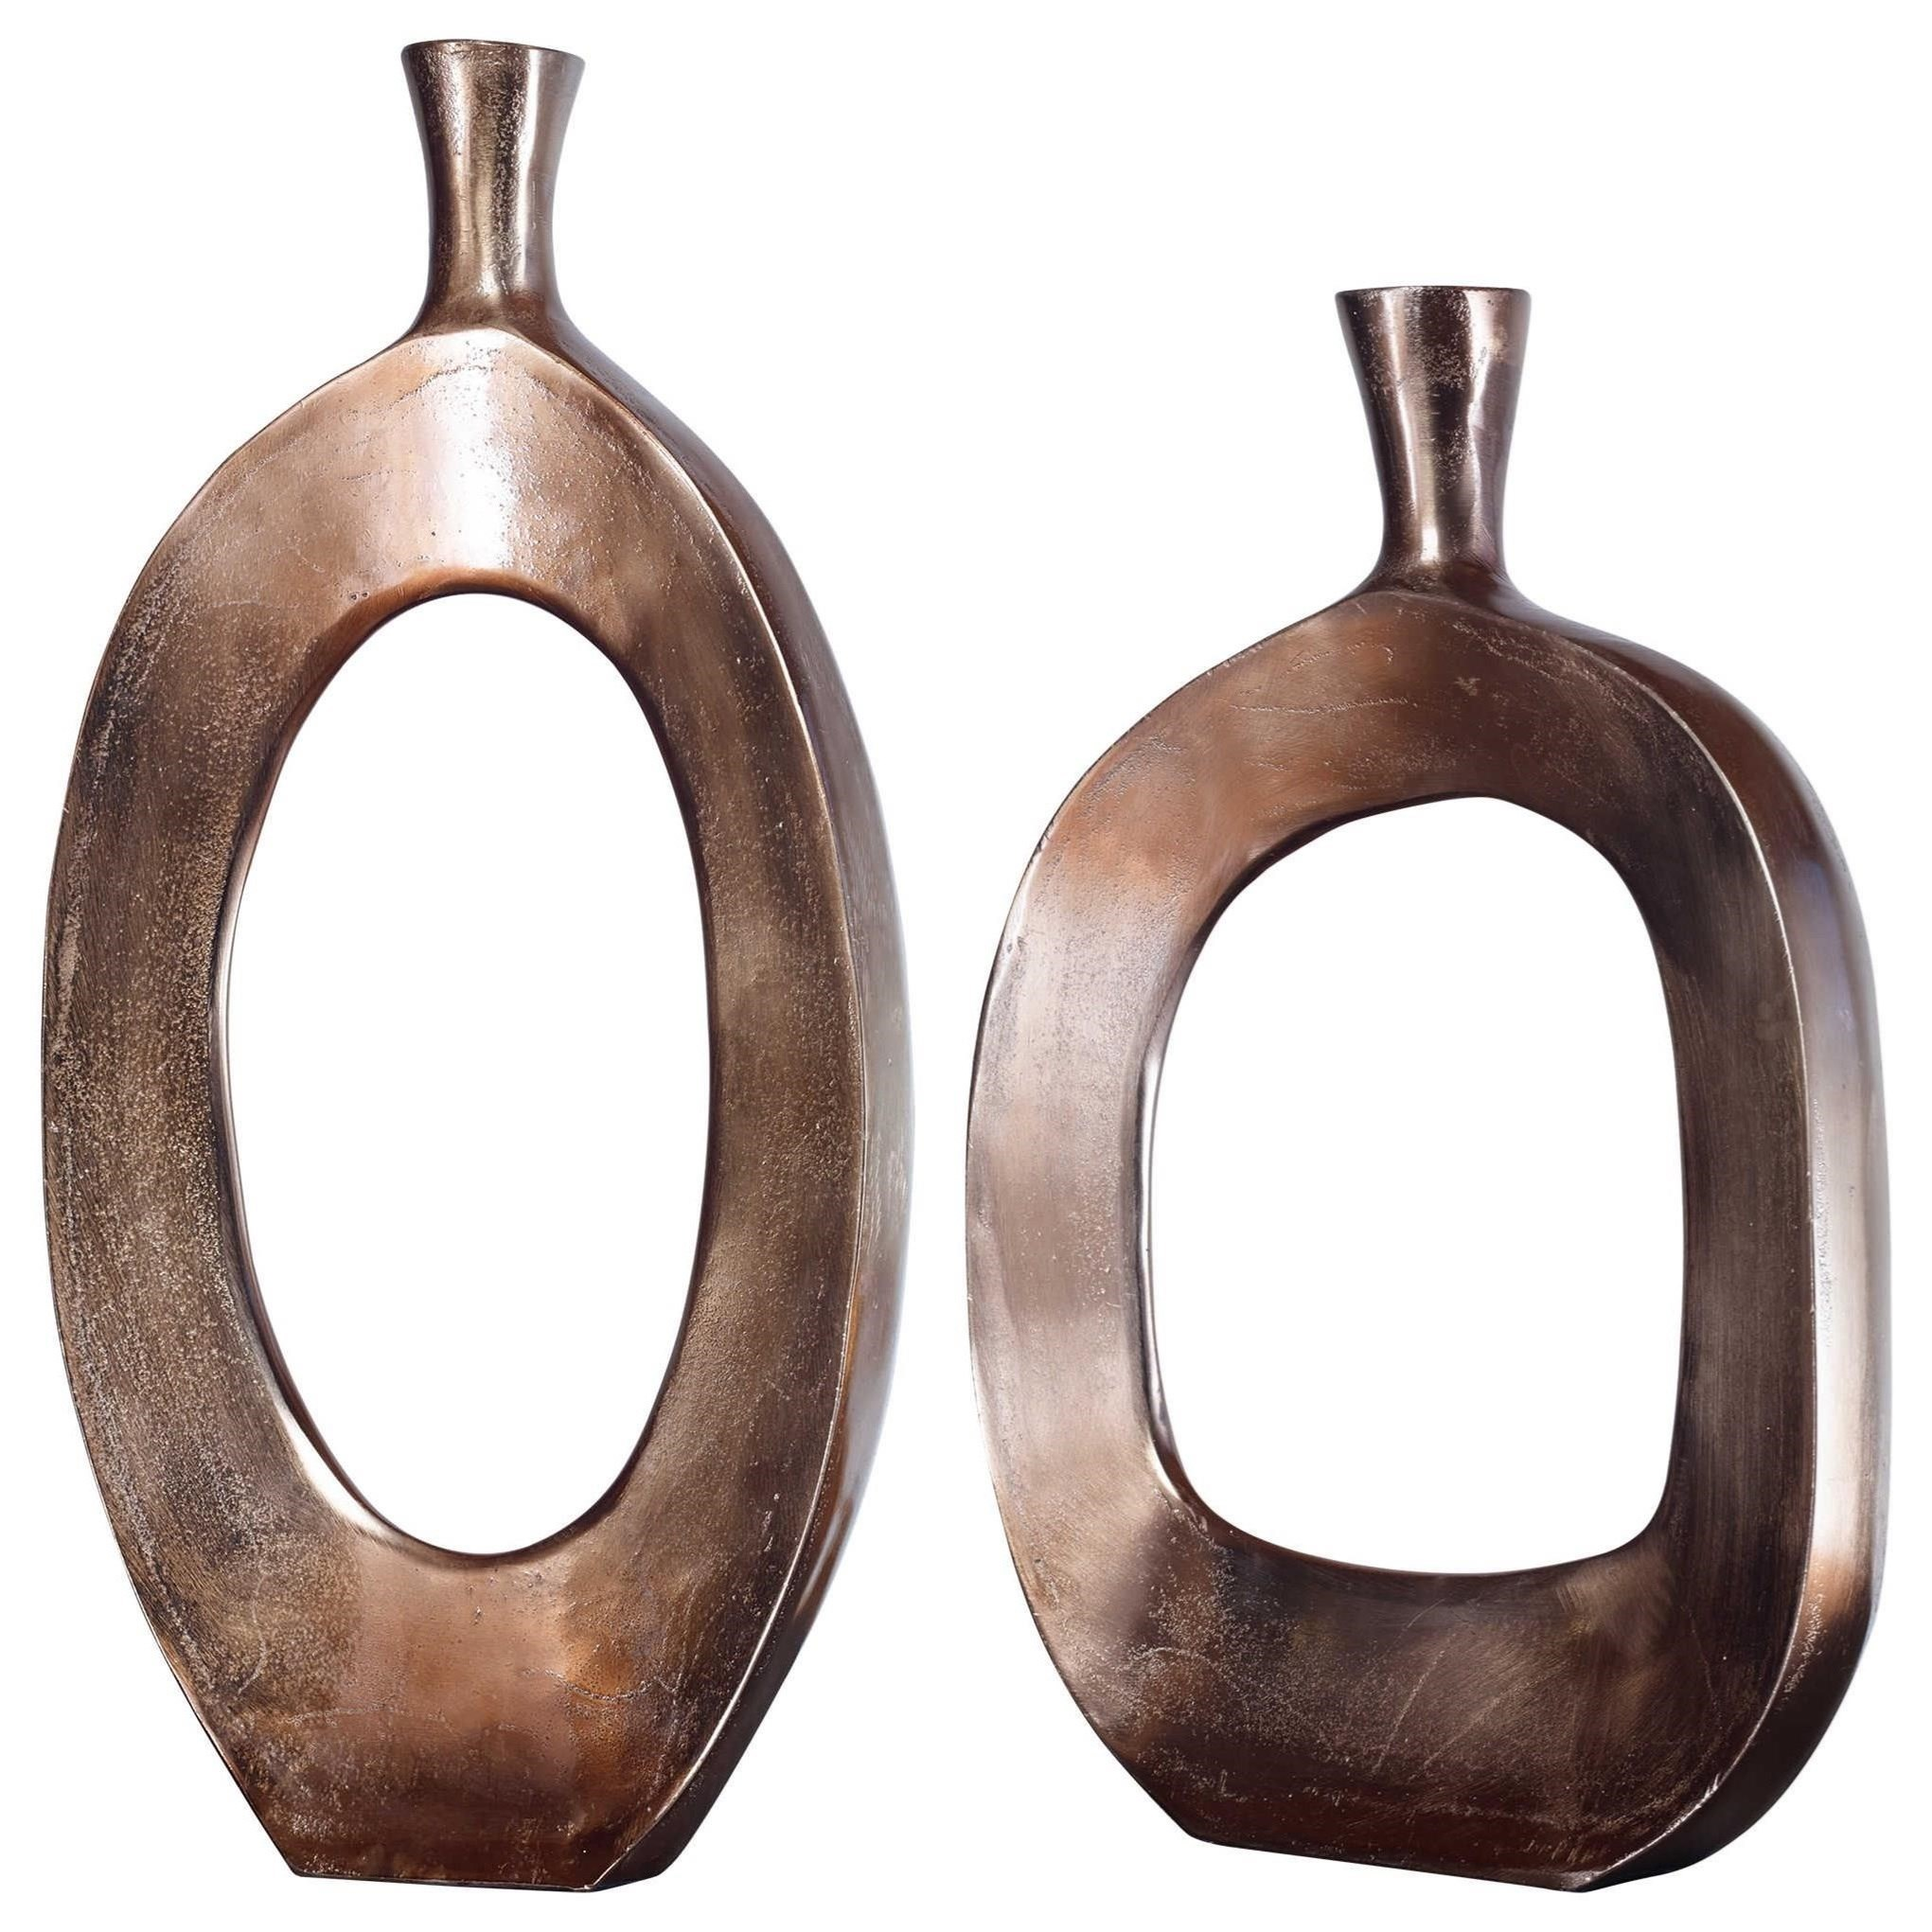 Kyler Textured Bronze Vases Set/2